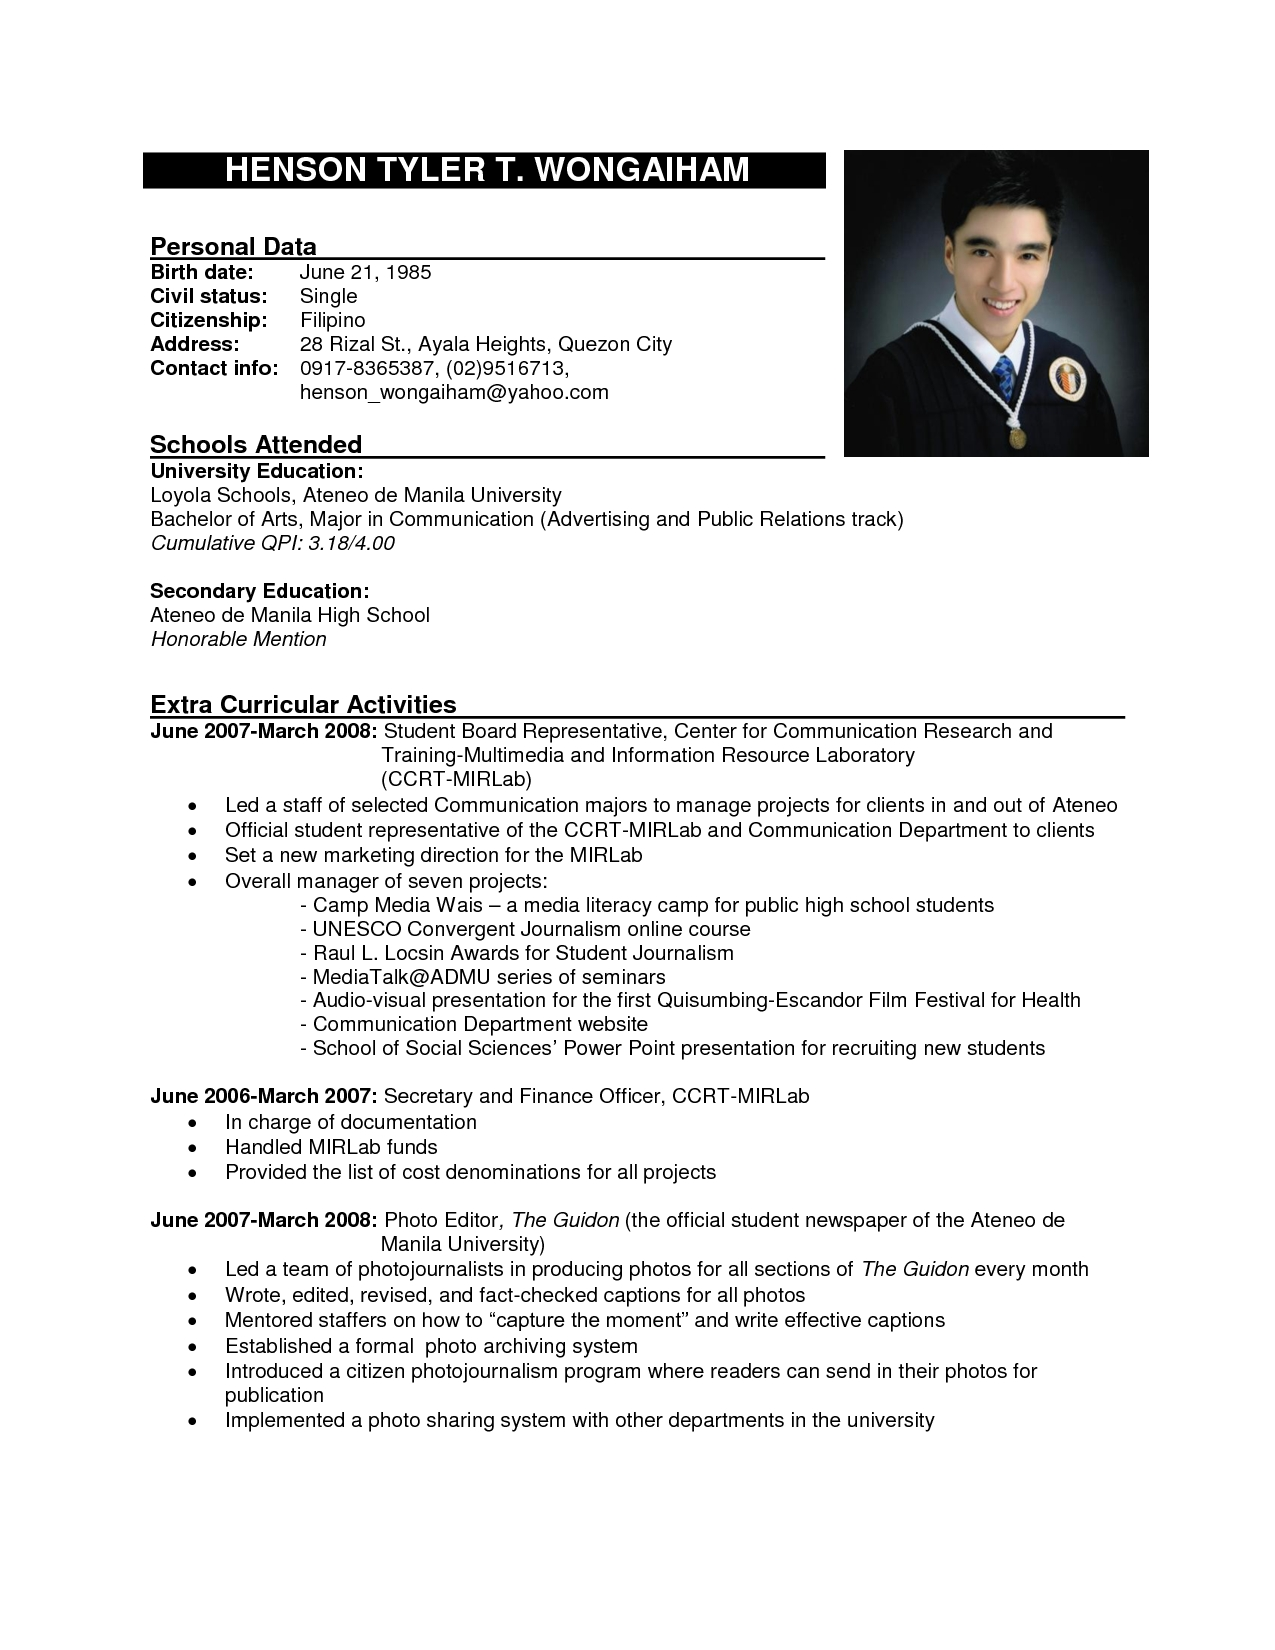 sample resume format images Onwe.bioinnovate.co